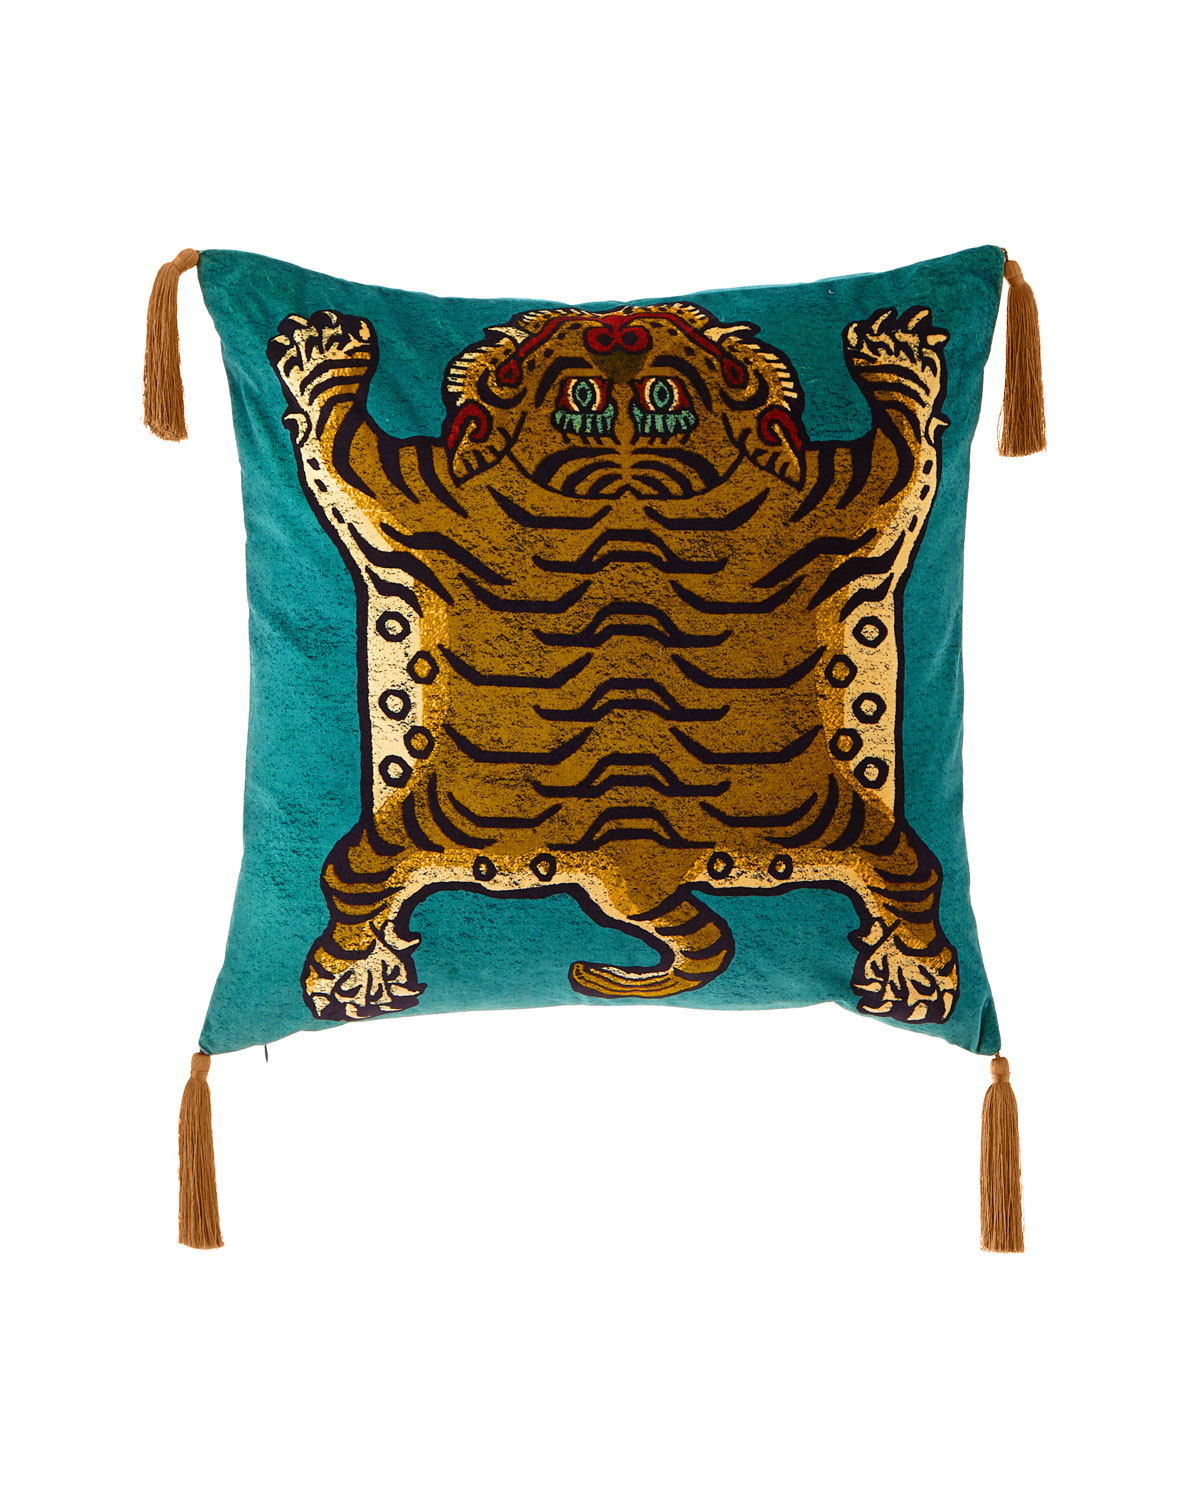 House of Hackney Saber Teal Large Velvet Pillow